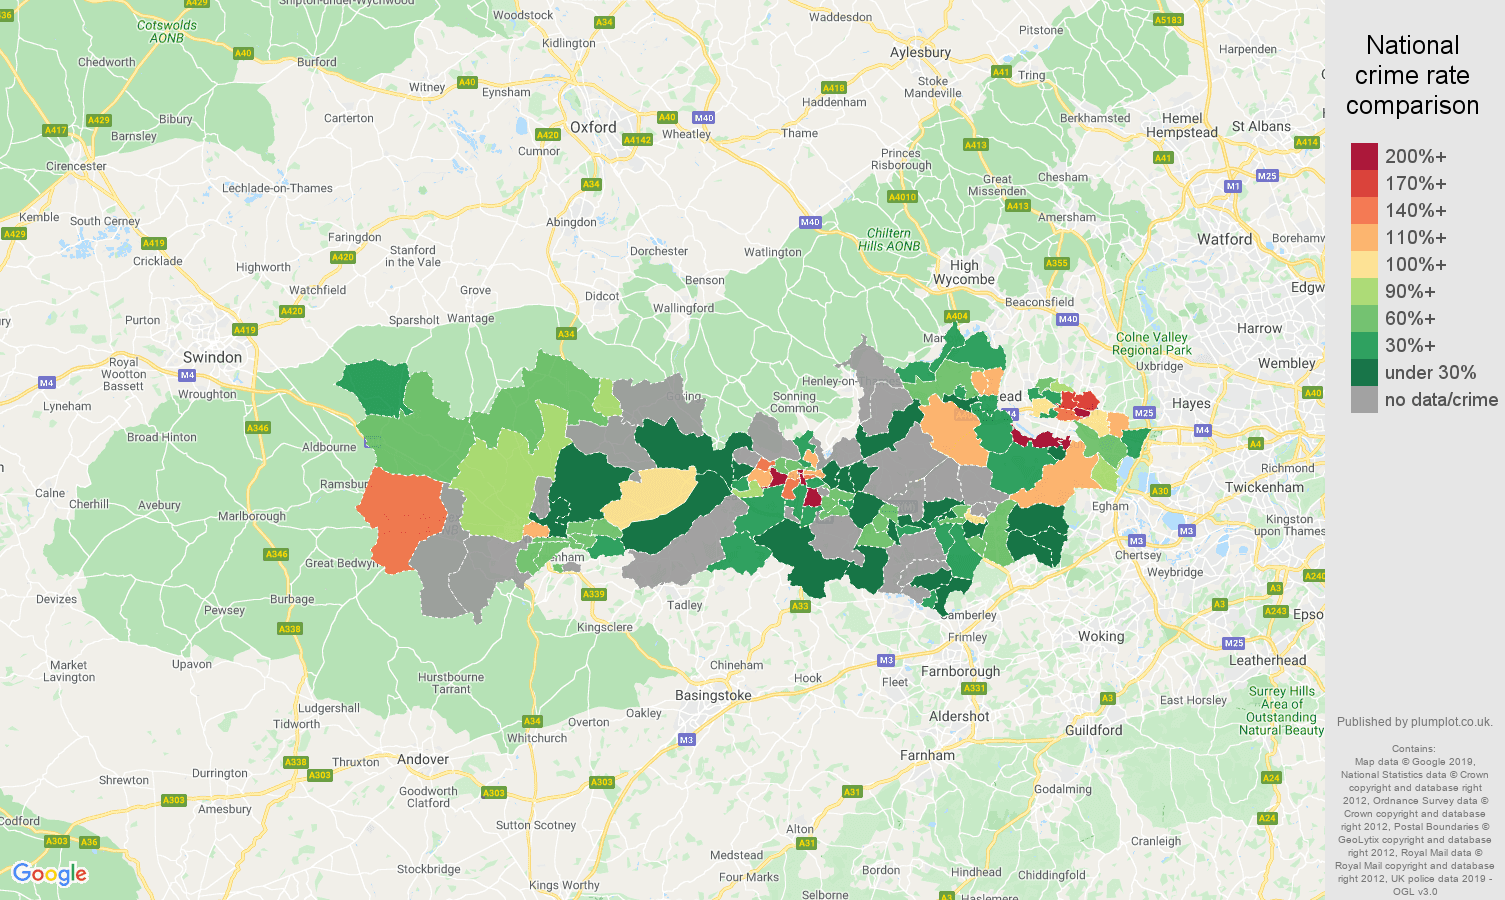 Berkshire possession of weapons crime rate comparison map